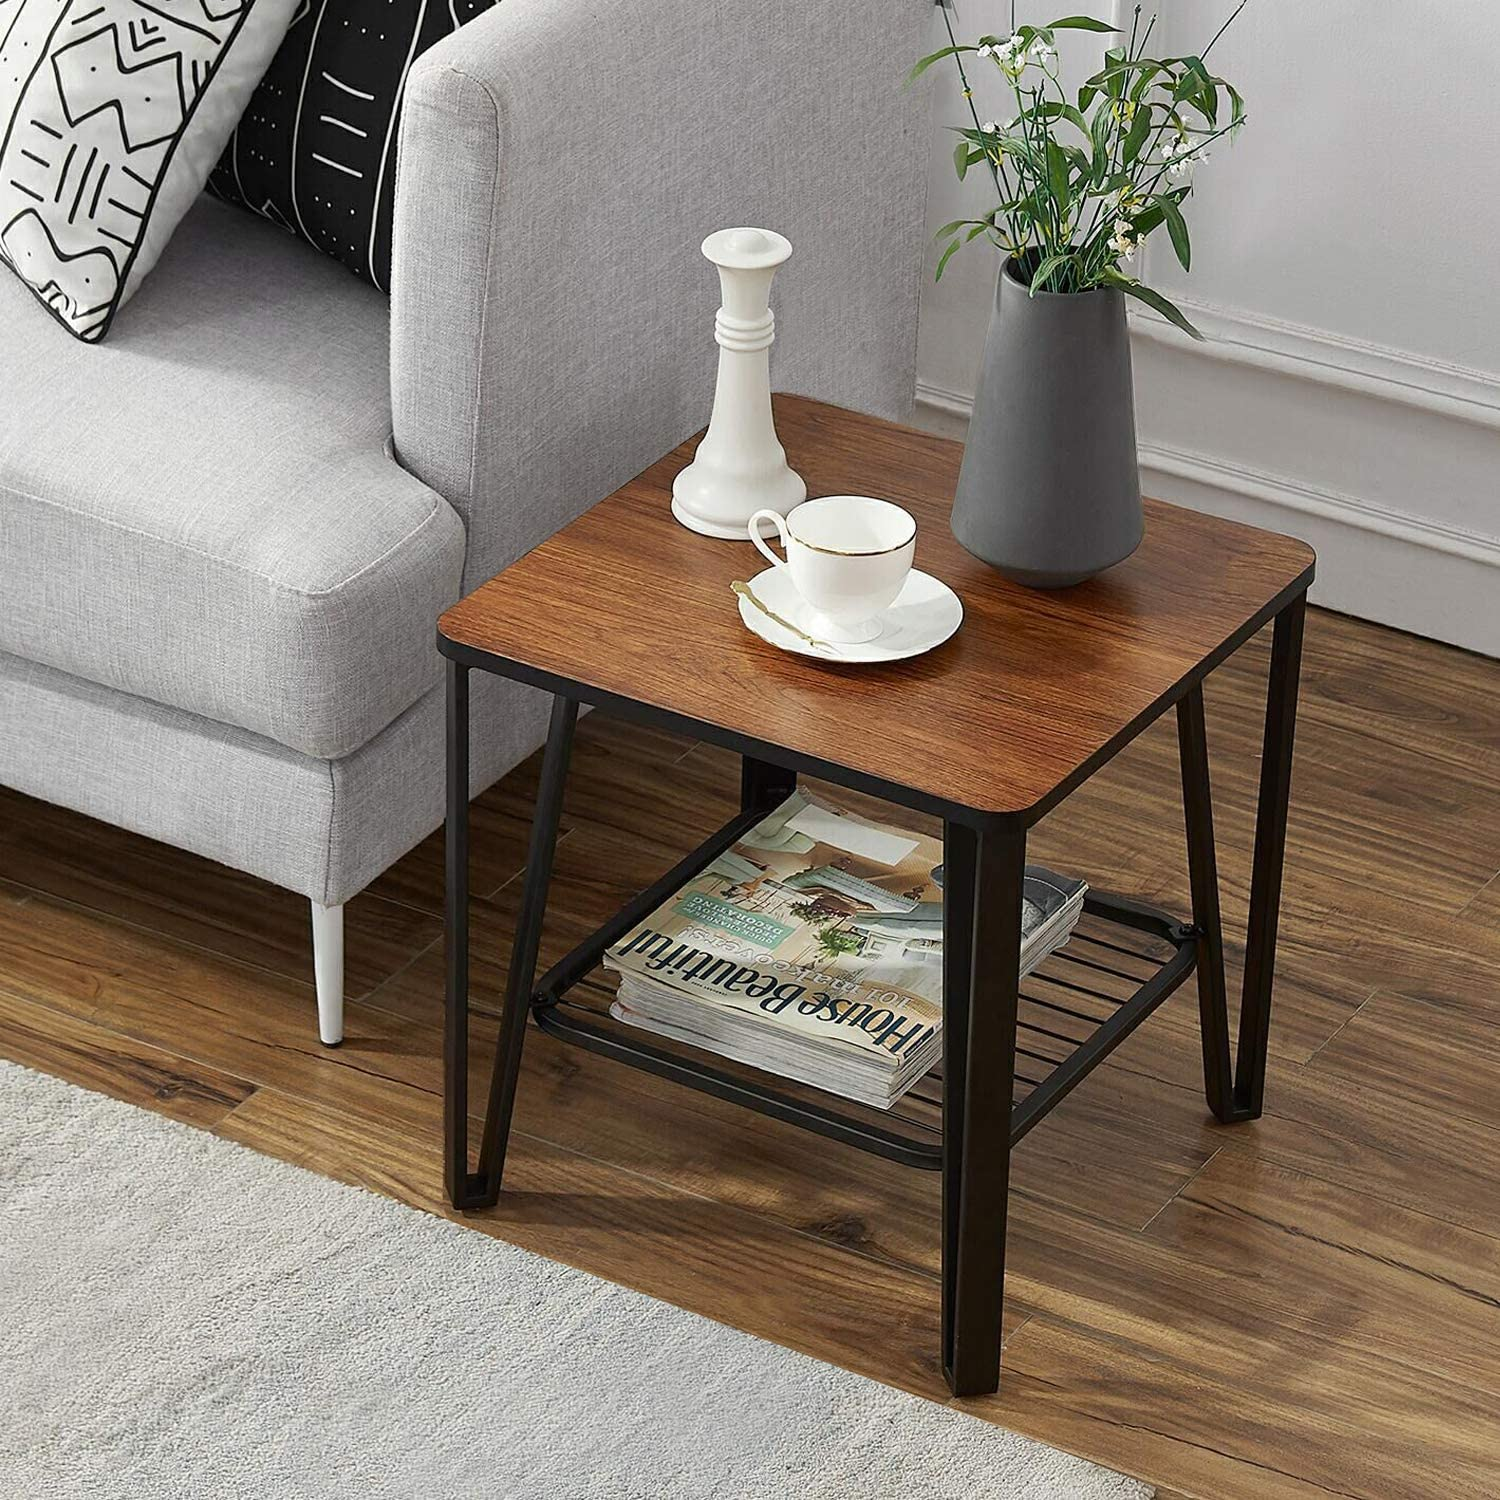 VECELO Industrial End/Side/Sofa Table, Night Stand with Metal Storage Shelf Living Room Furniture, Easy Assembly, Brown